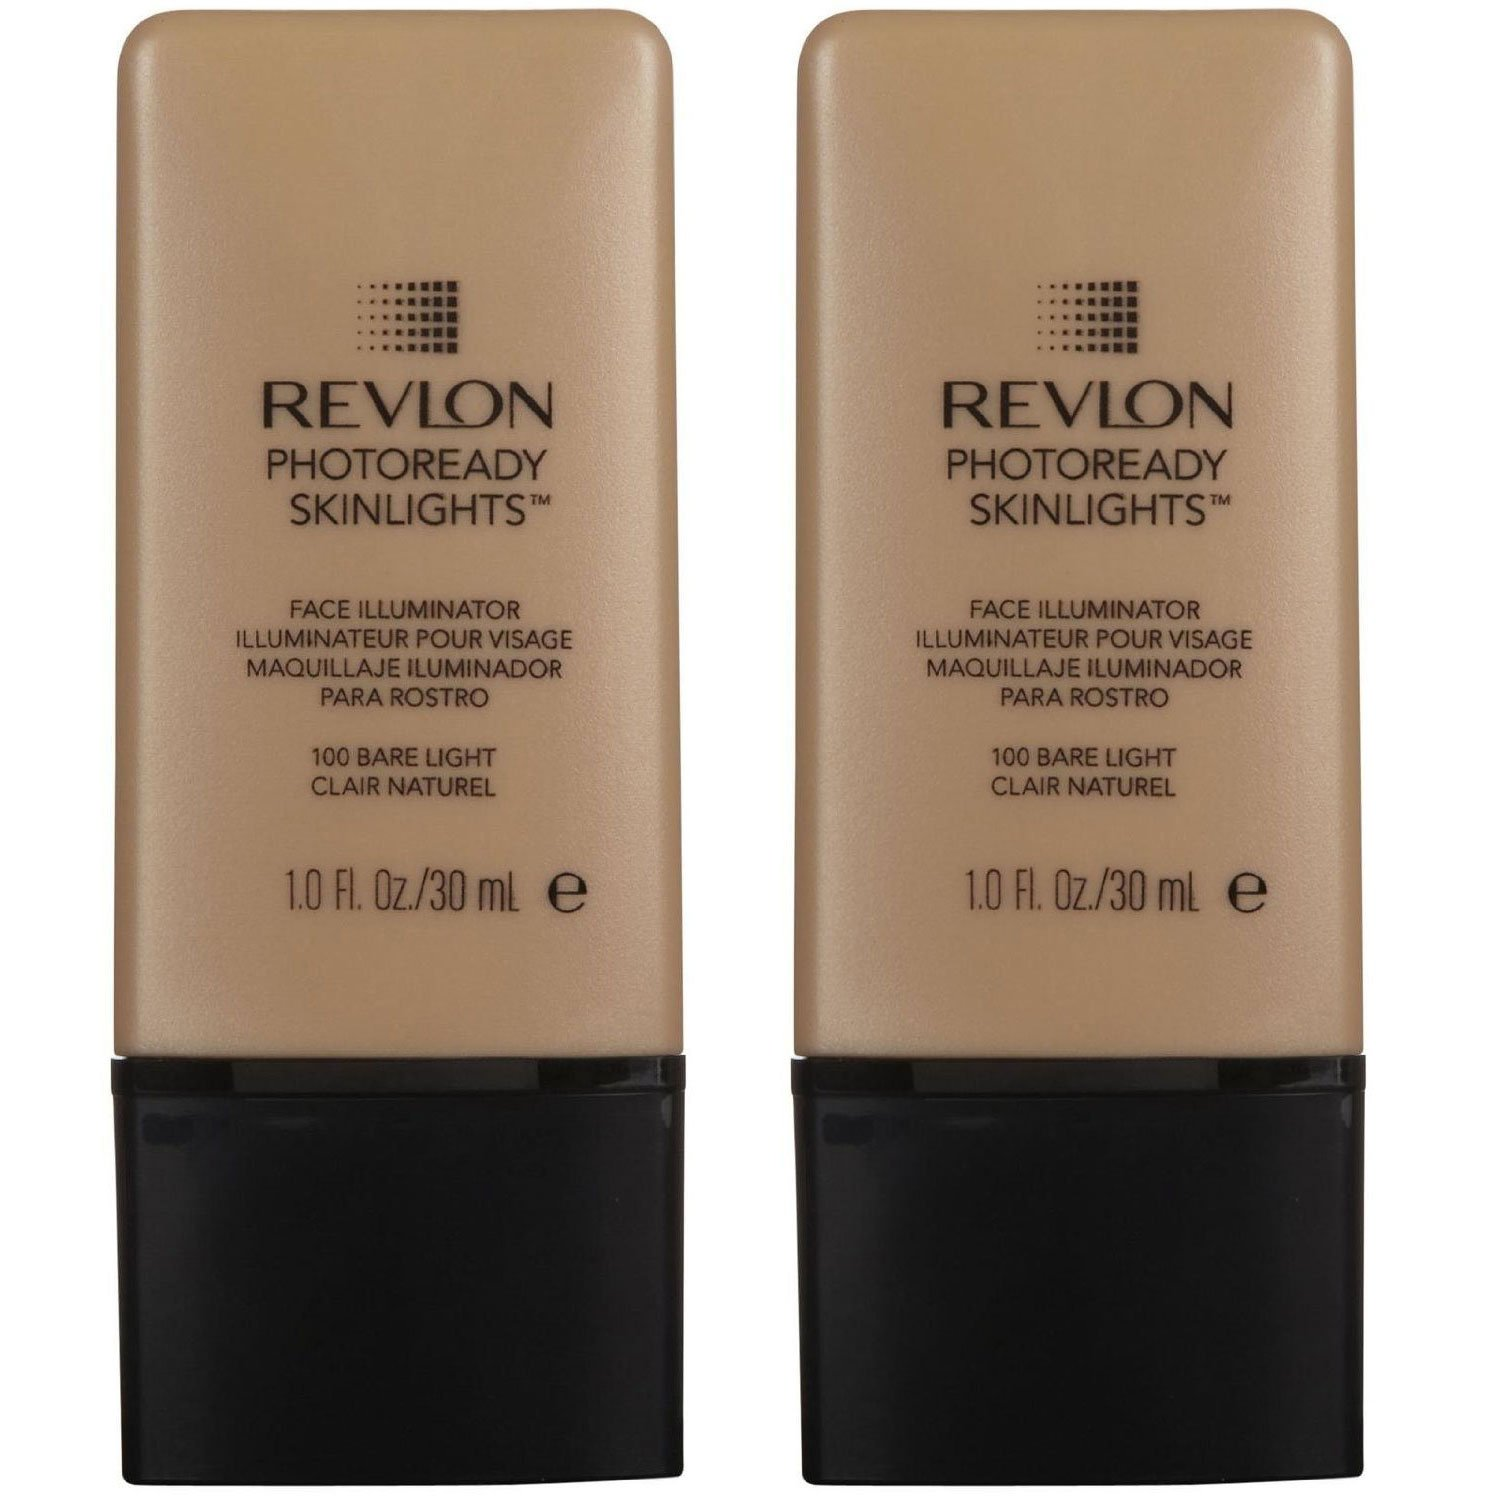 Revlon PhotoReady SkinLights Face Illuminator - Bare Light 100 (Pack of 2)